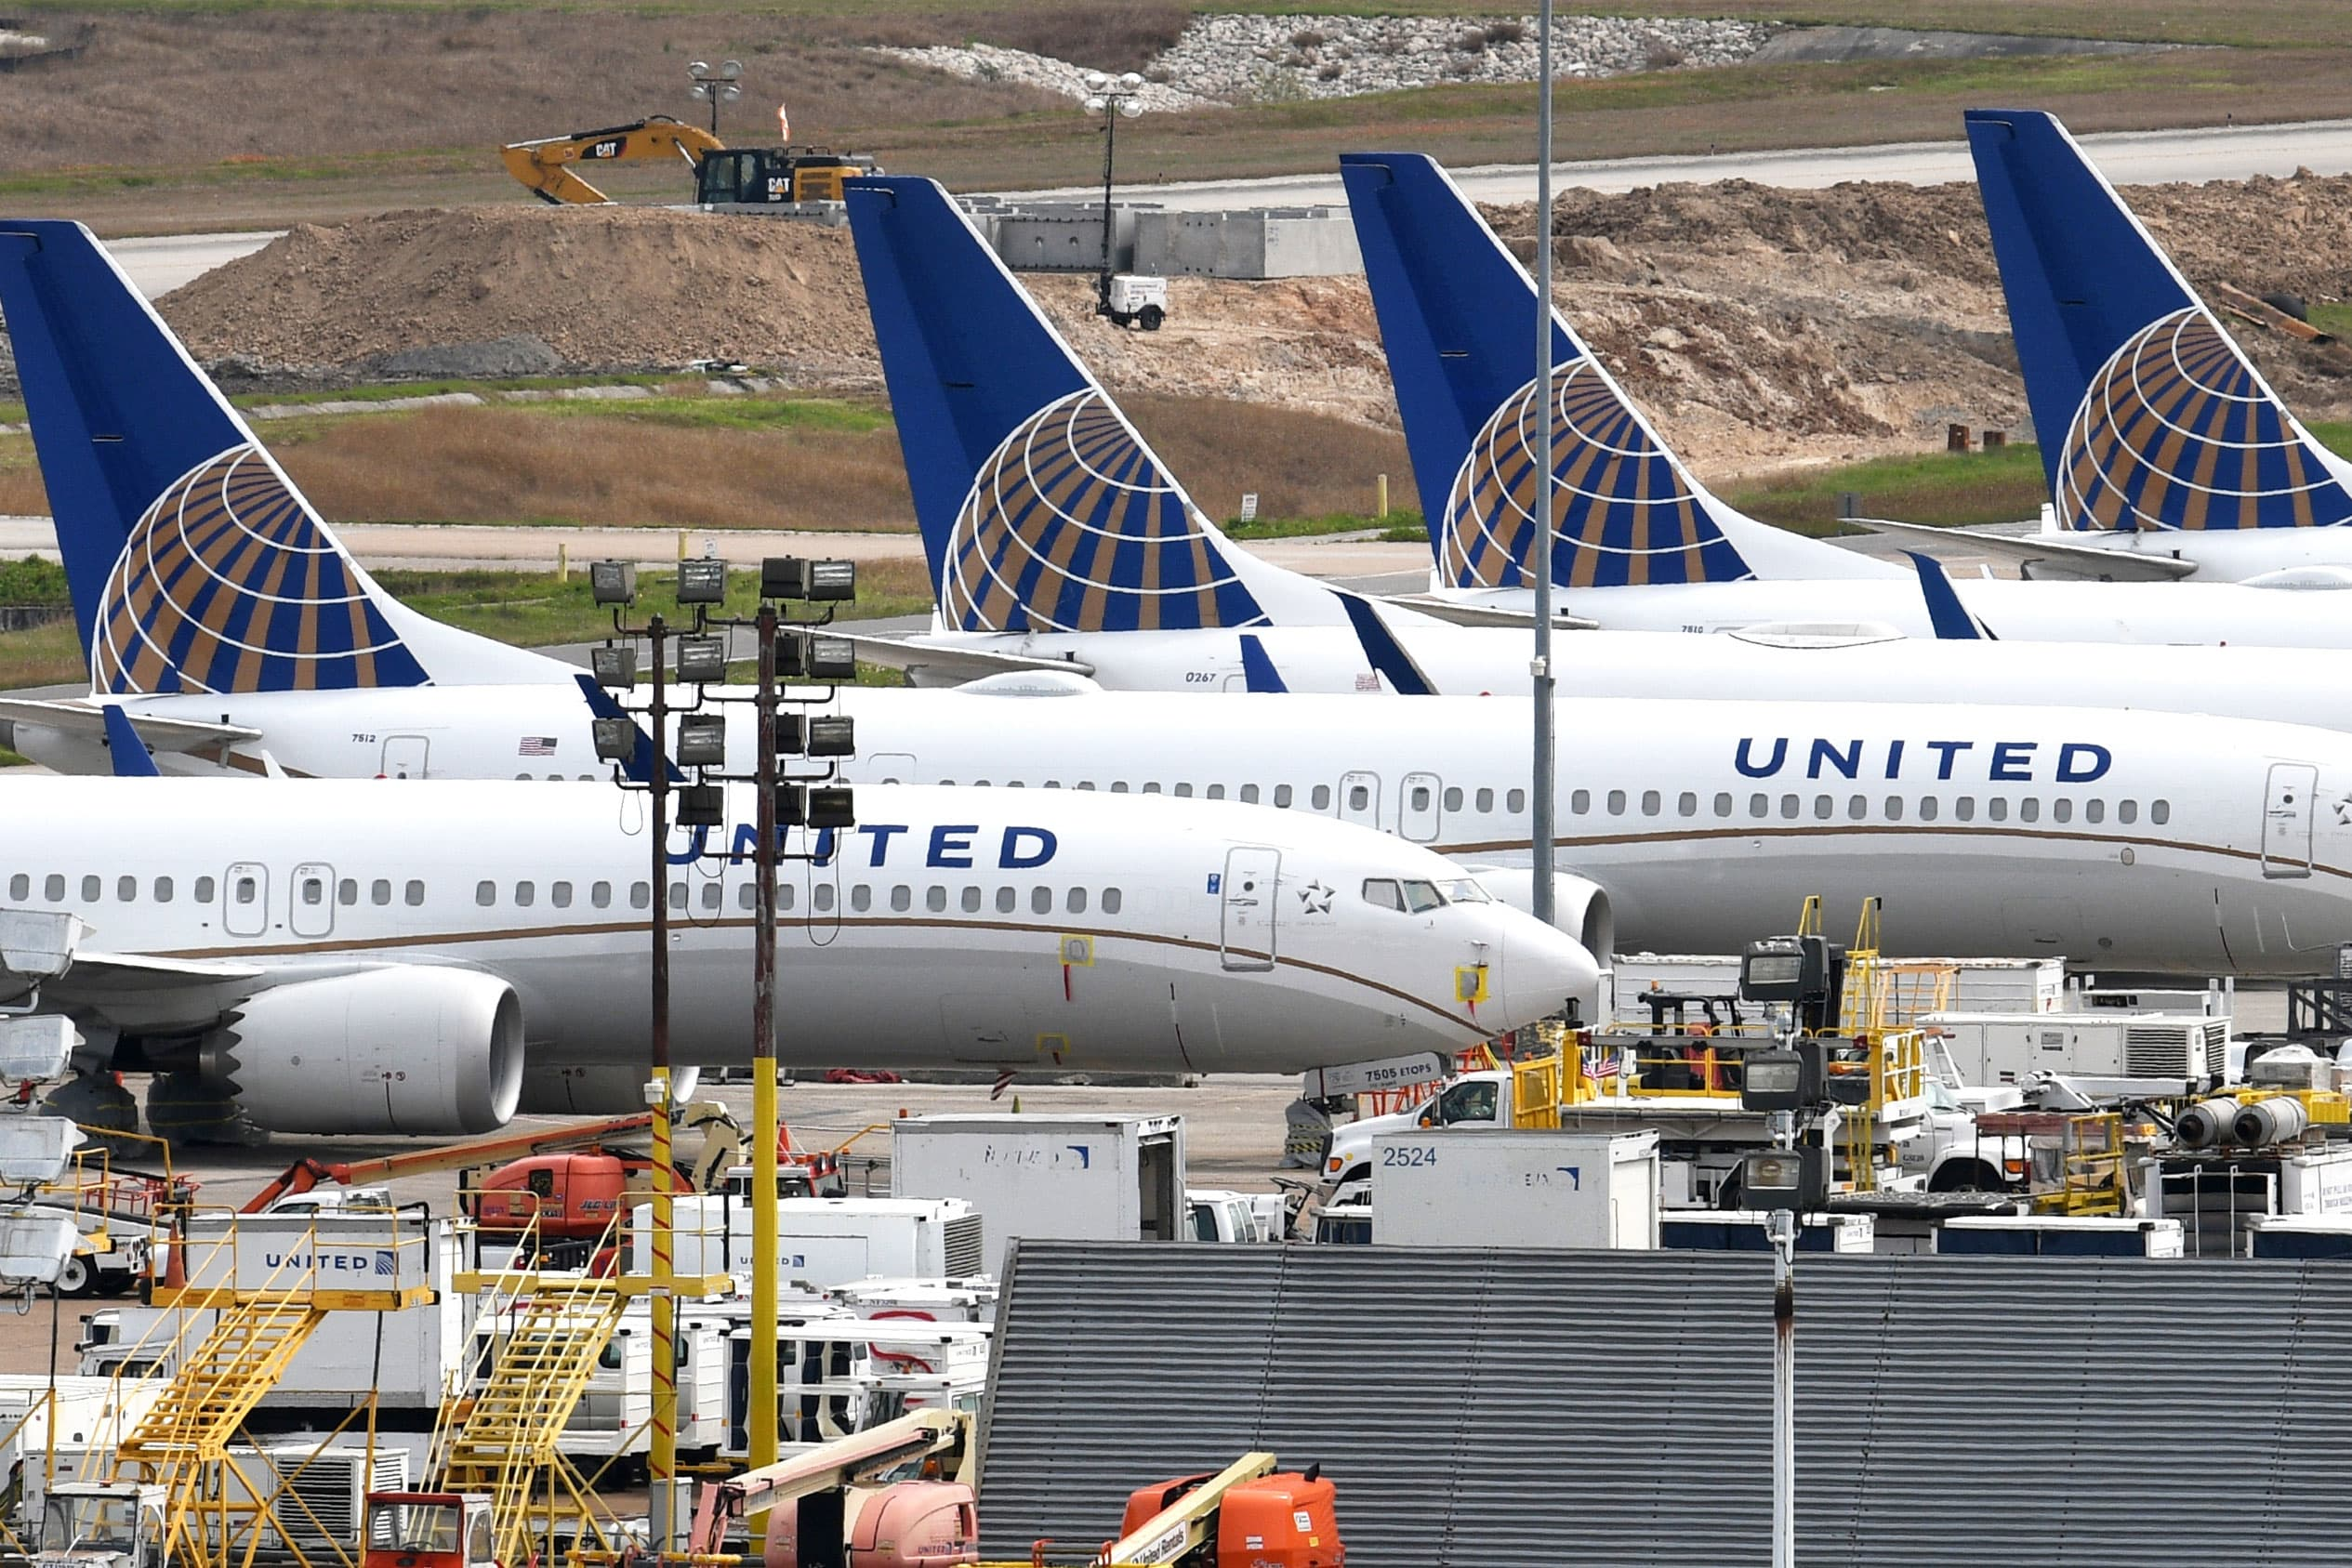 United cancels some Barcelona flights, waives cancellation fees as coronavirus derails Mobile World Congress